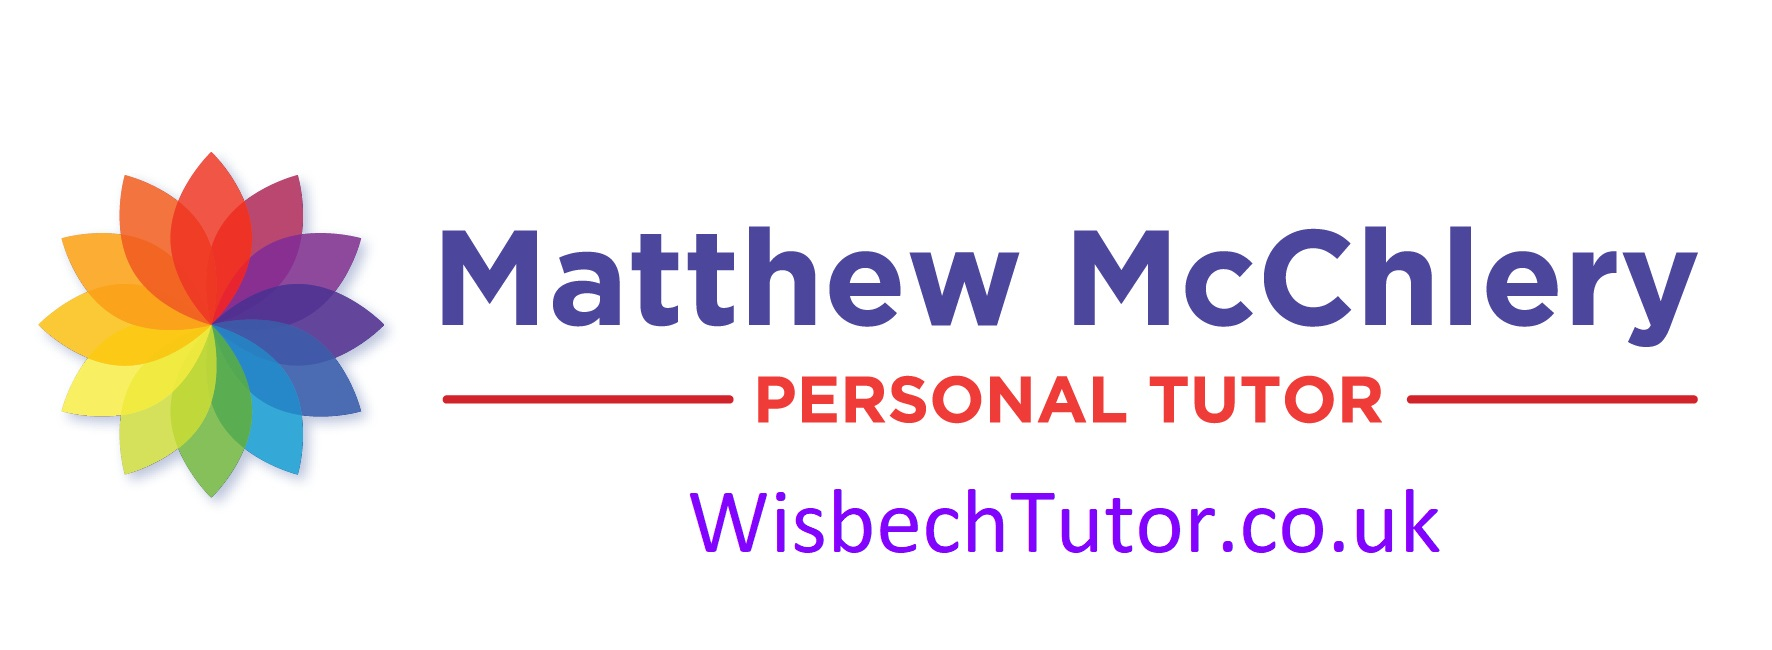 WisbechTutor.co.uk